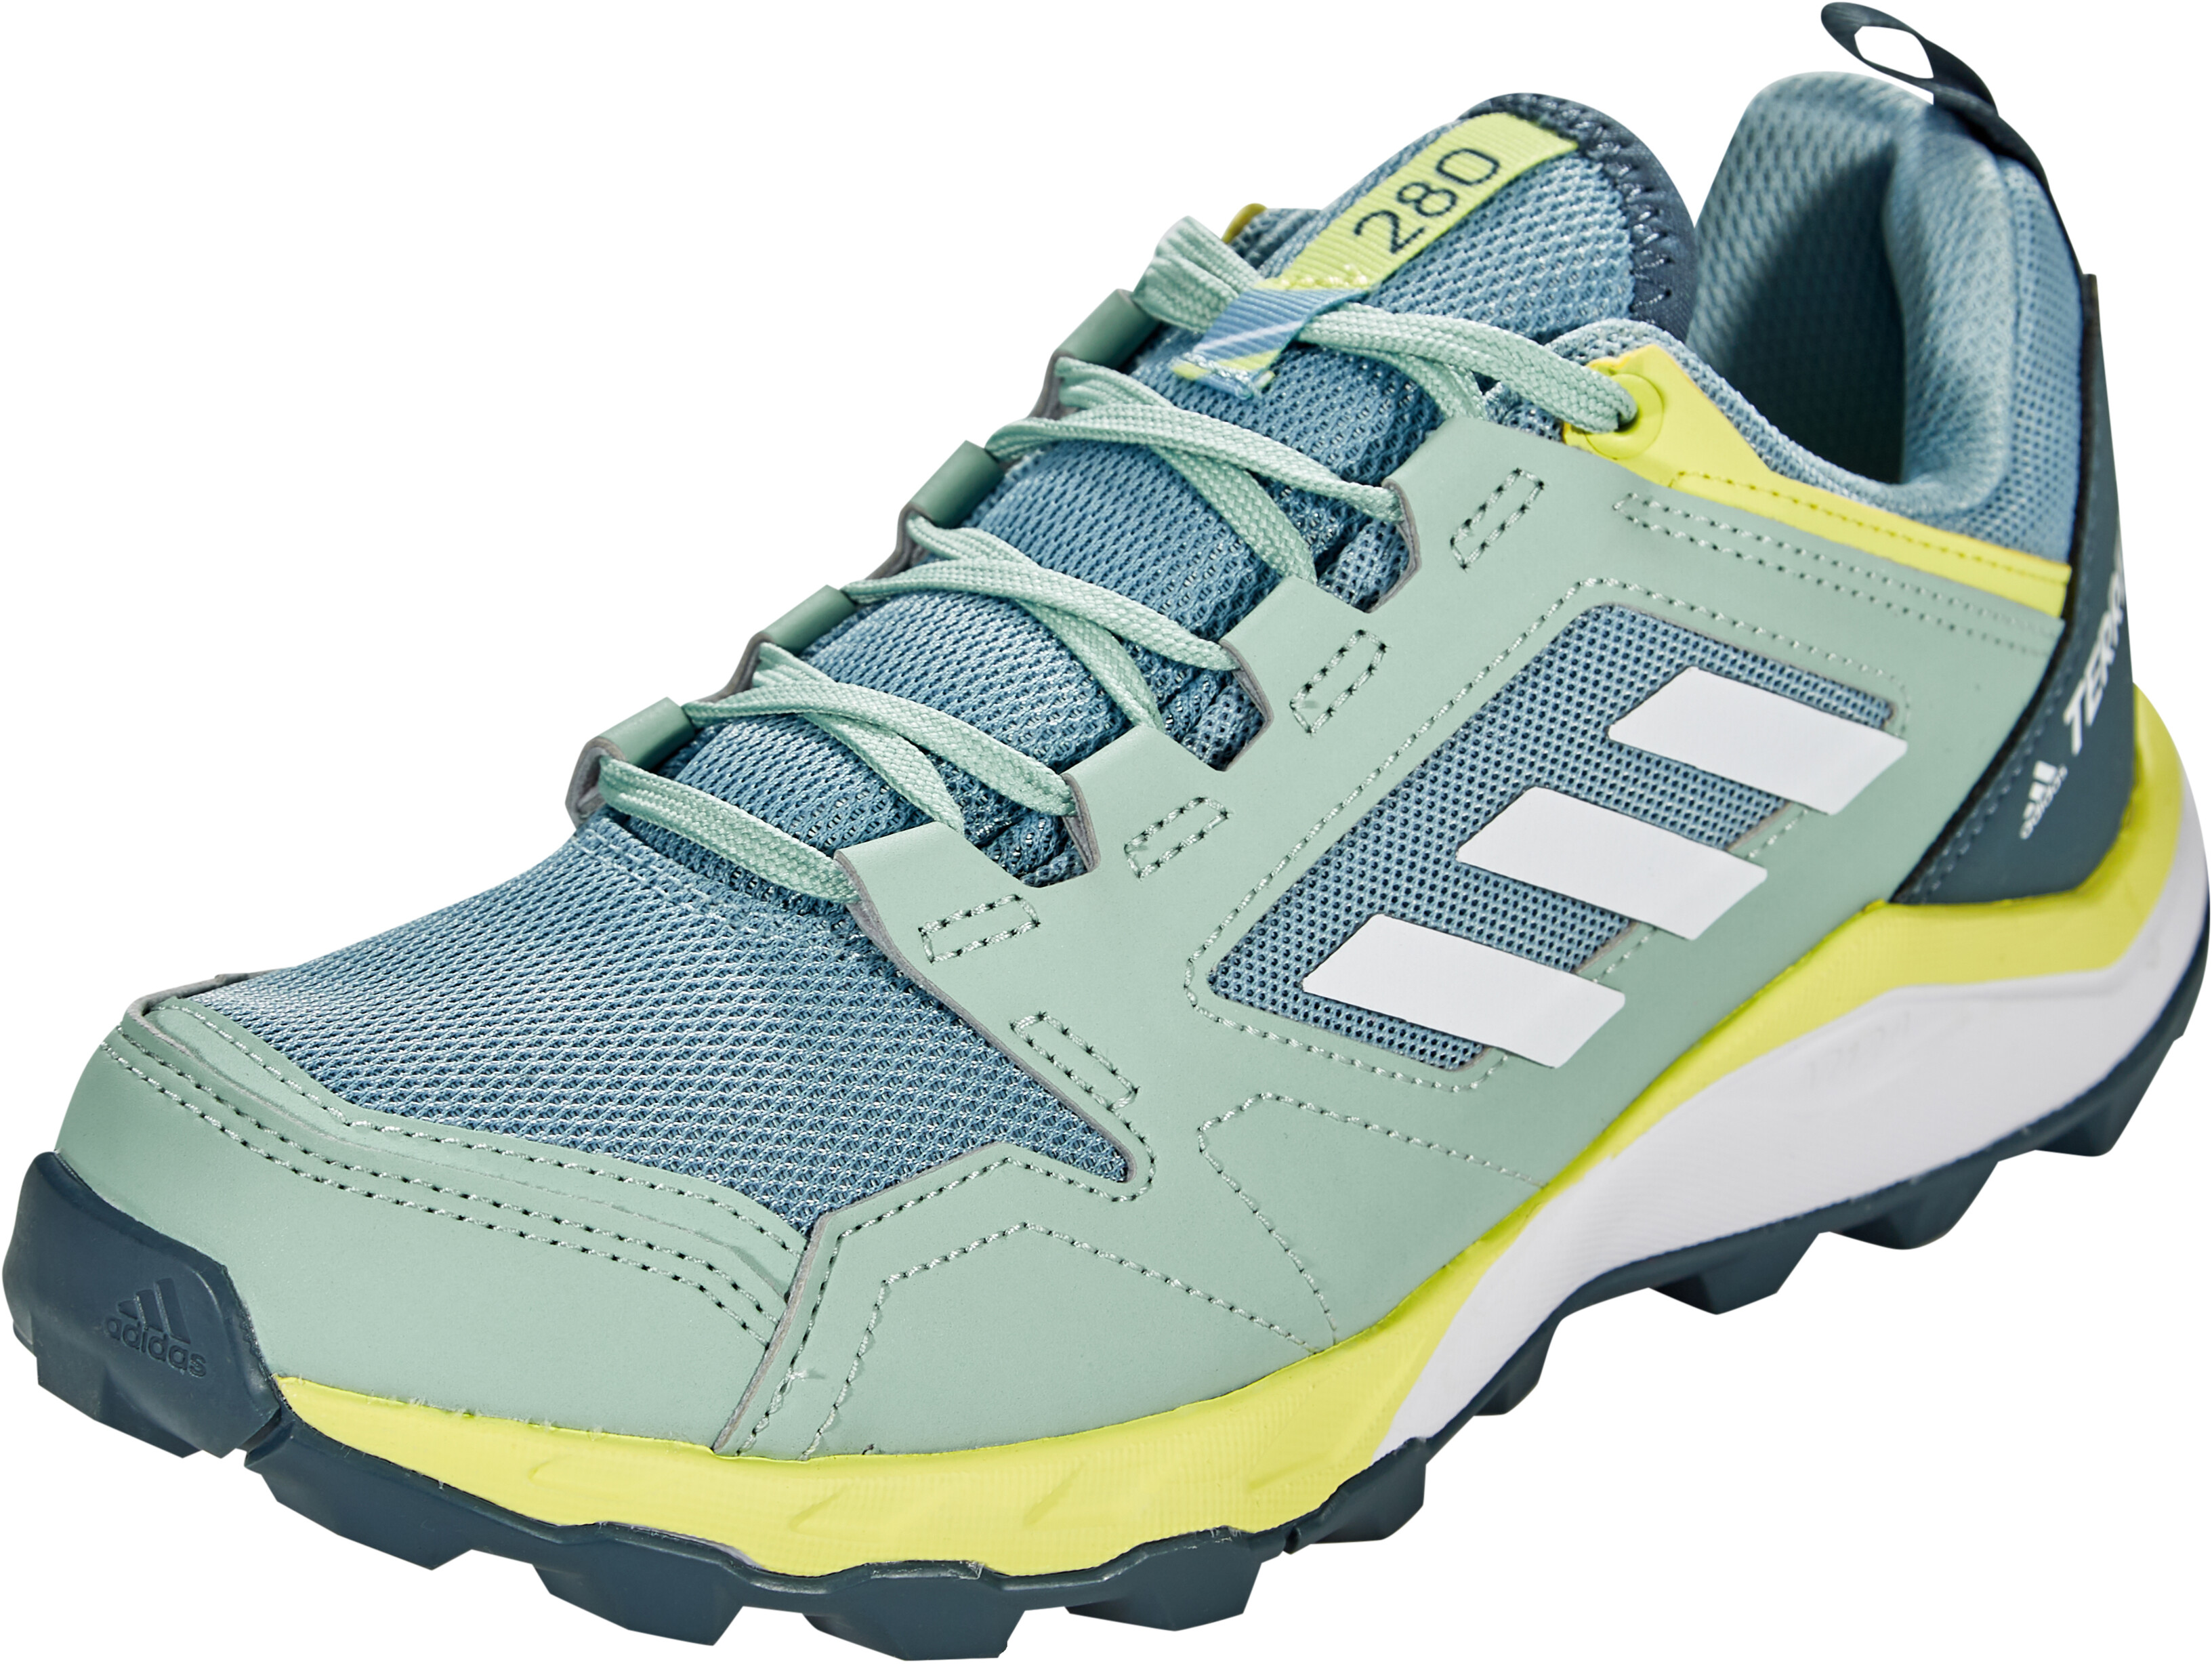 Litoral Ruina Perseguir  adidas TERREX Agravic TR Trail Running Shoes Women ash grey/footwear  white/yellow tint at addnature.co.uk